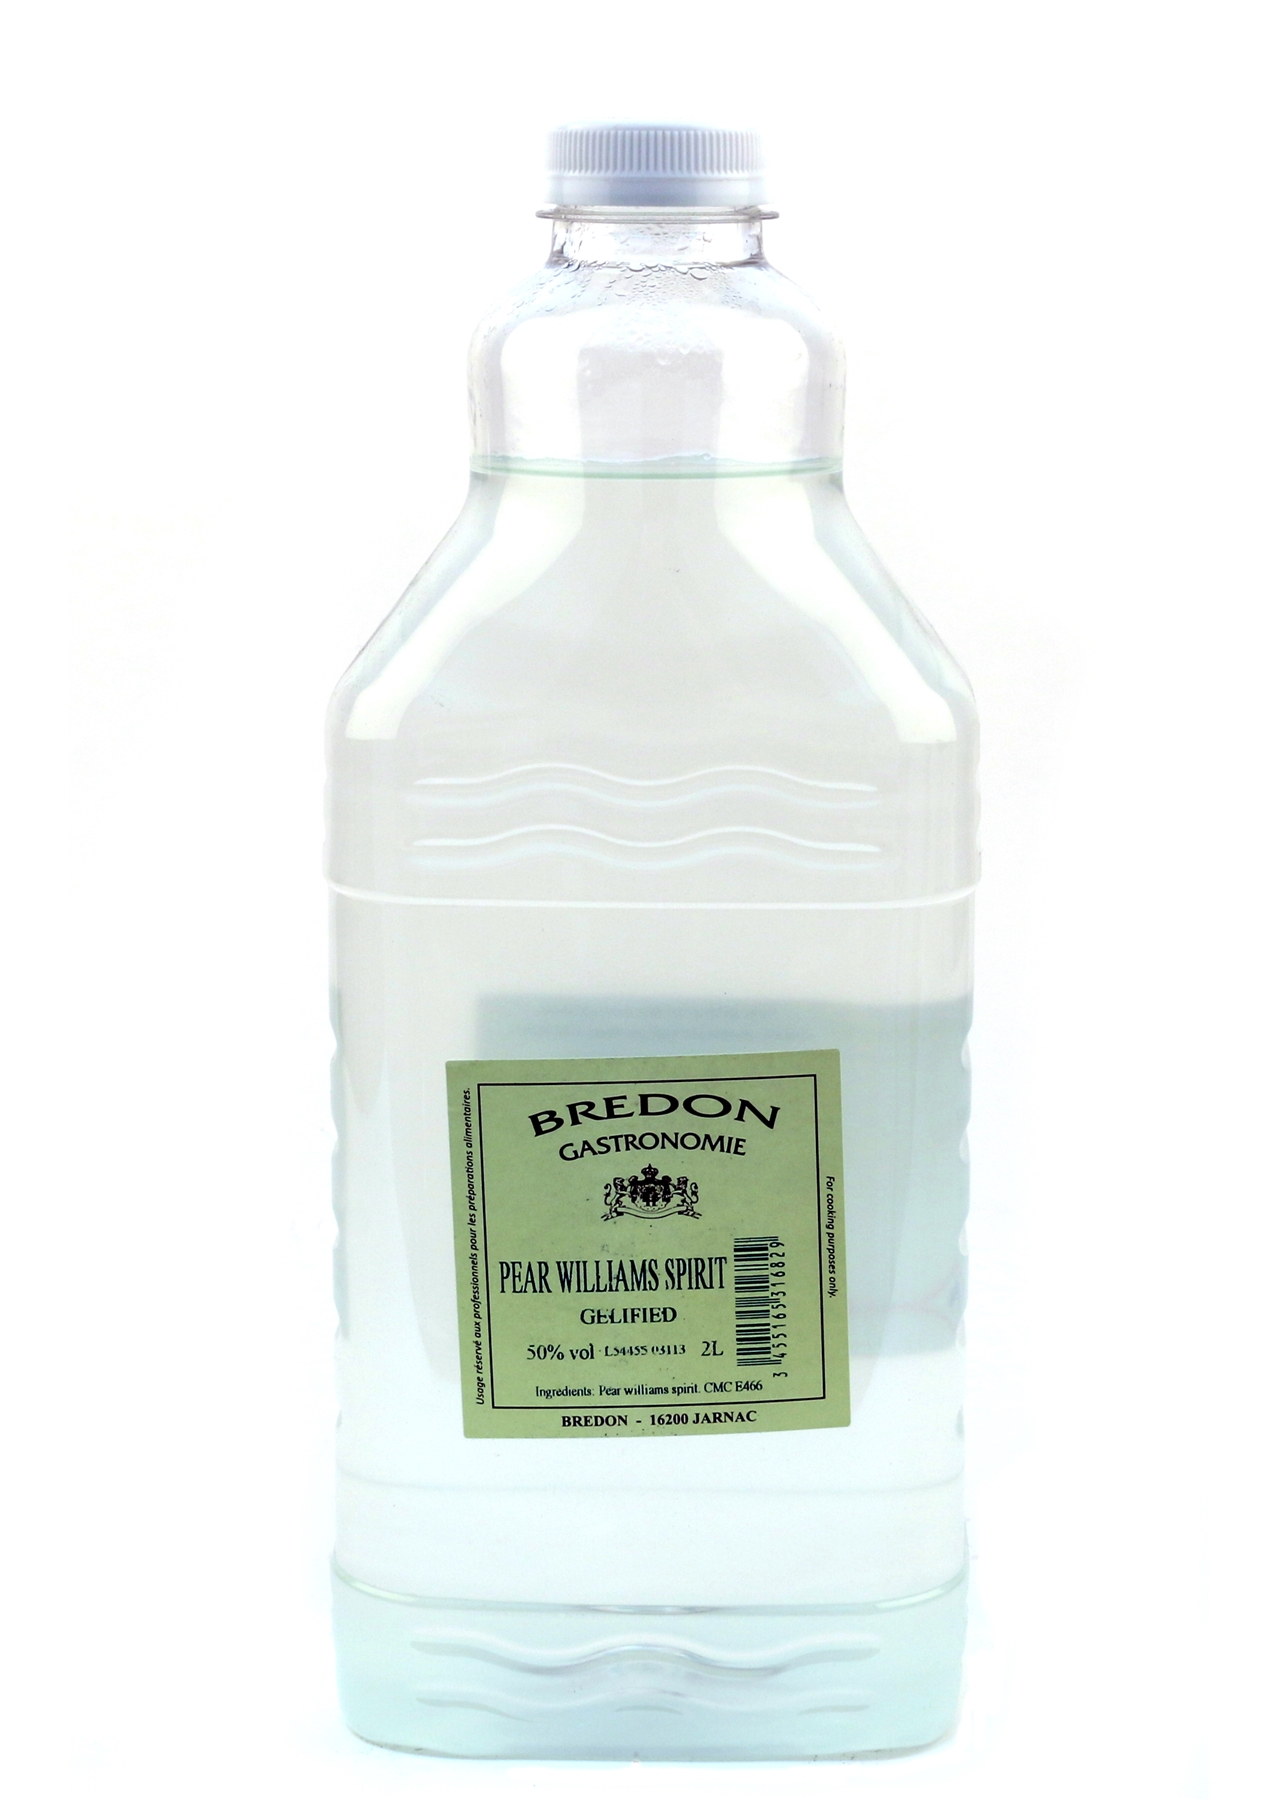 Pear Williams Gelified Bredon 2lt 50%